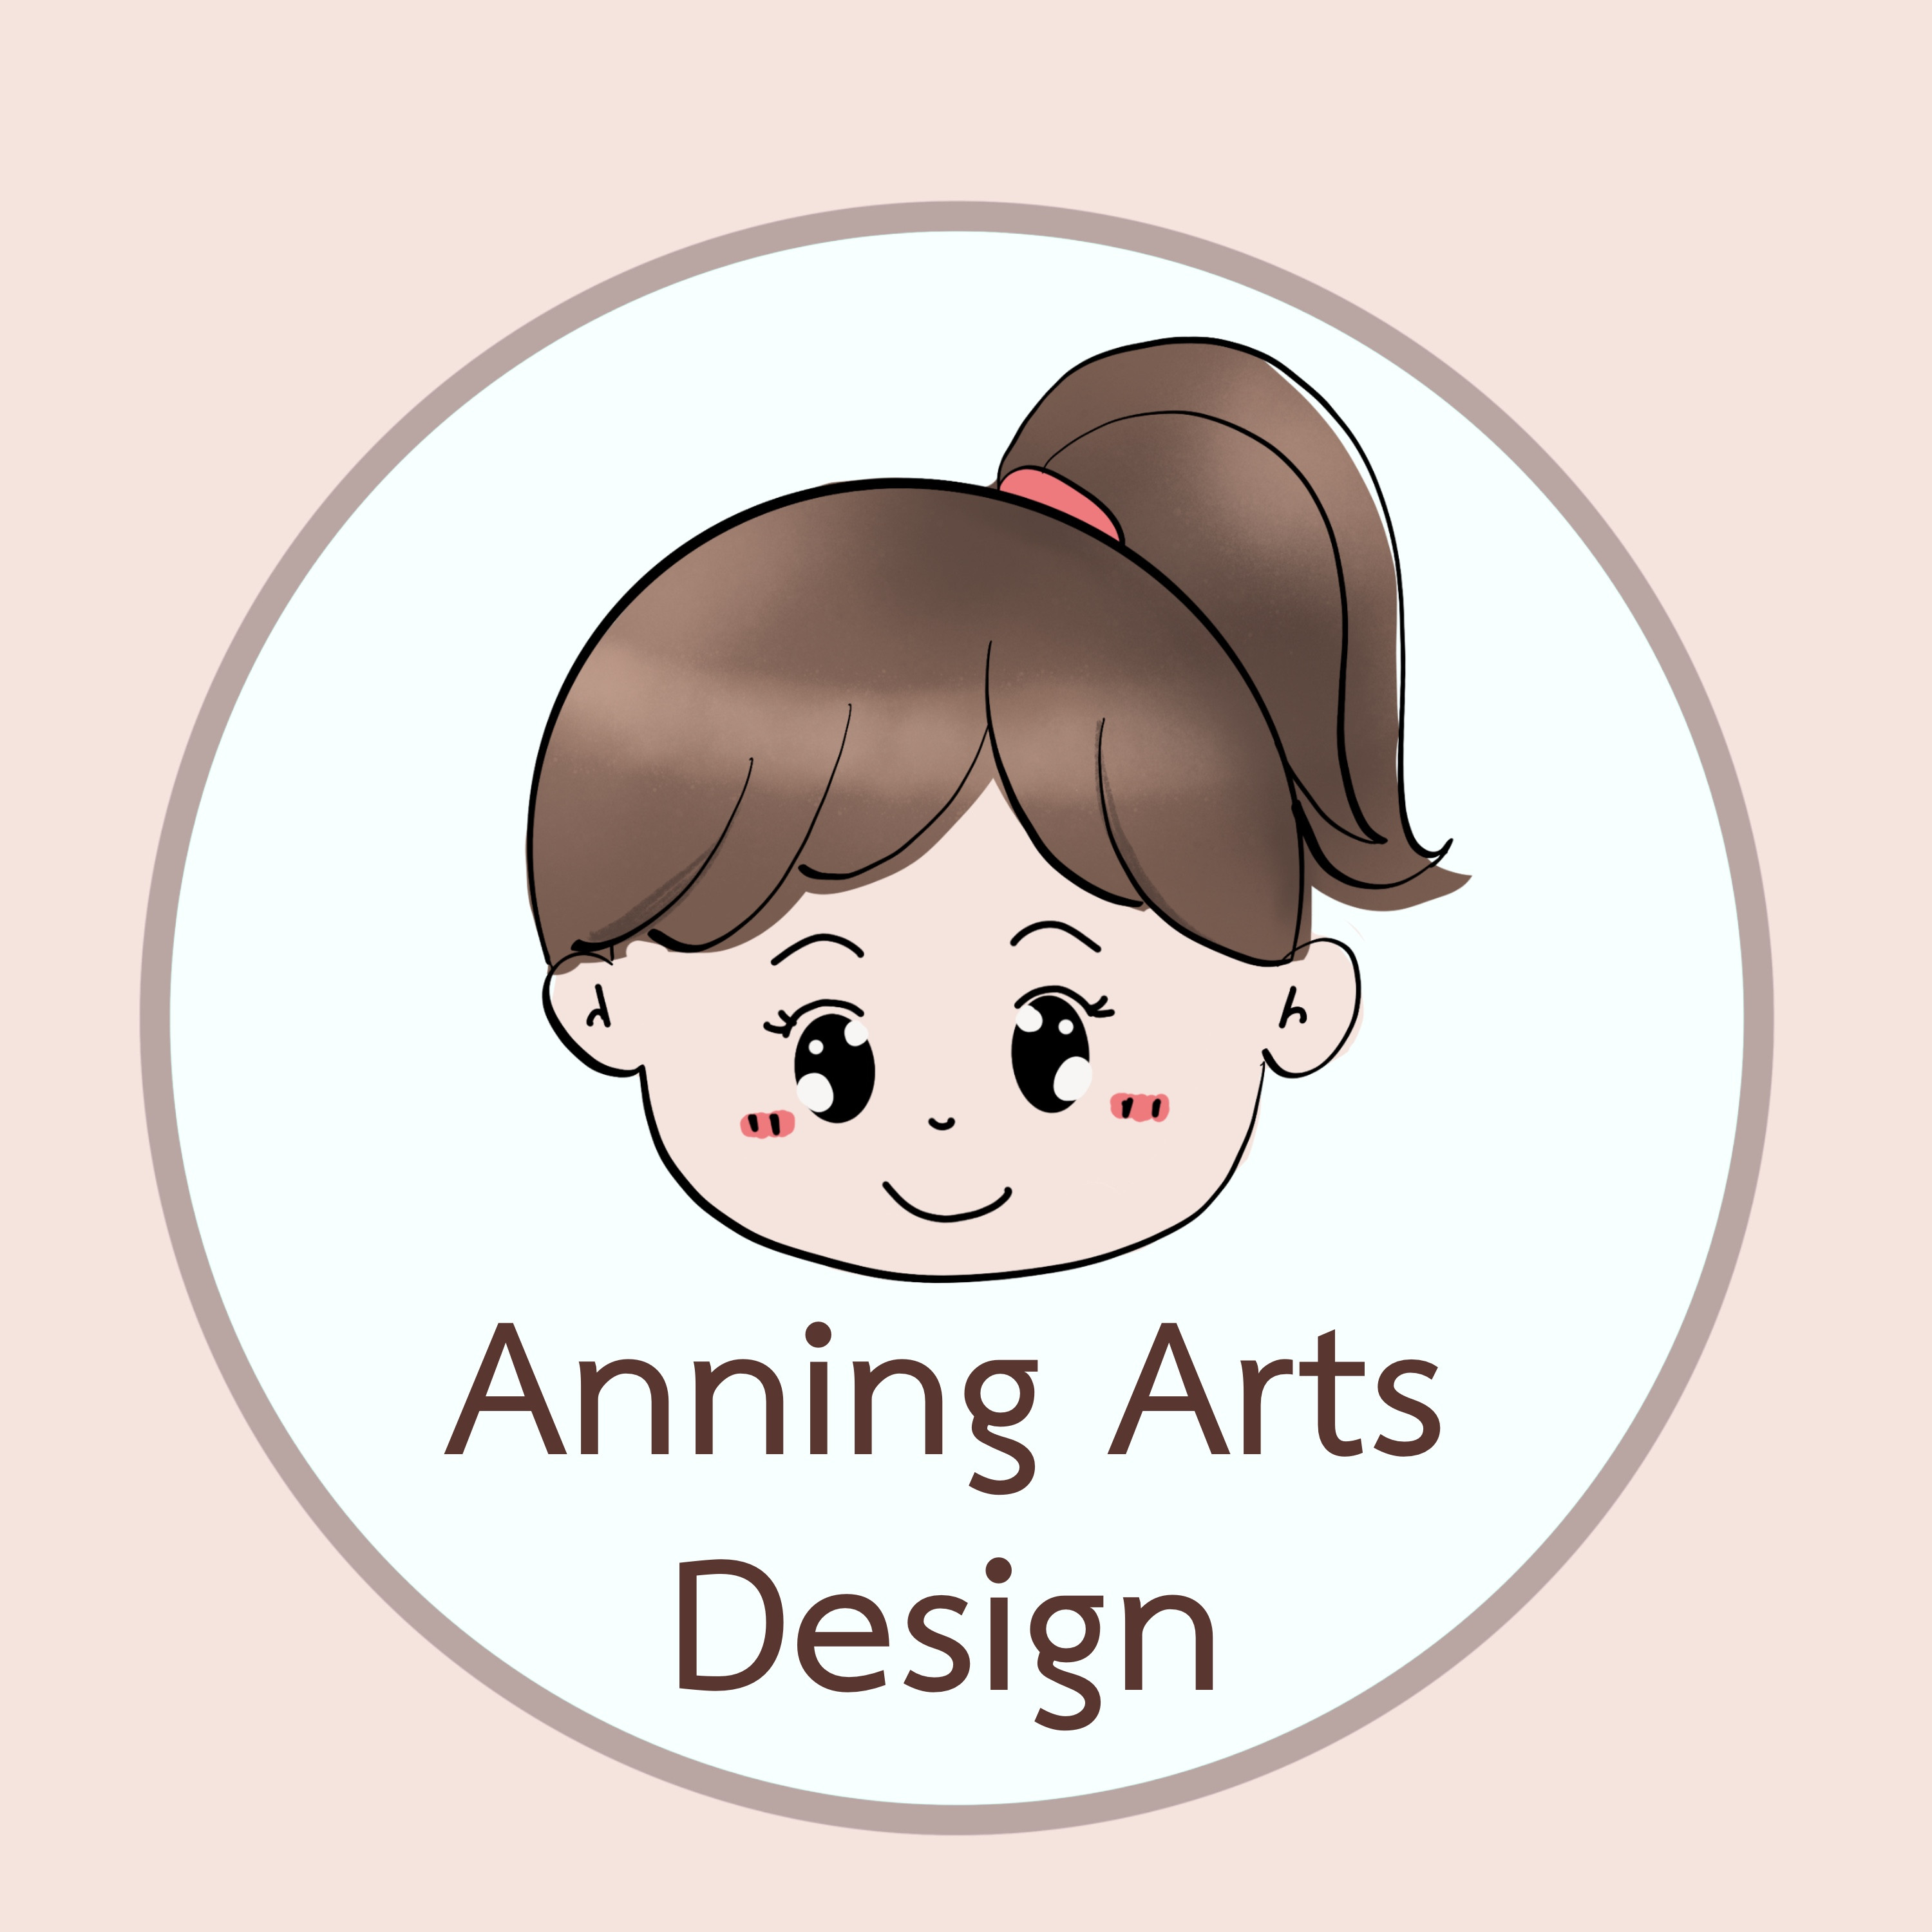 AnningArts's profile picture